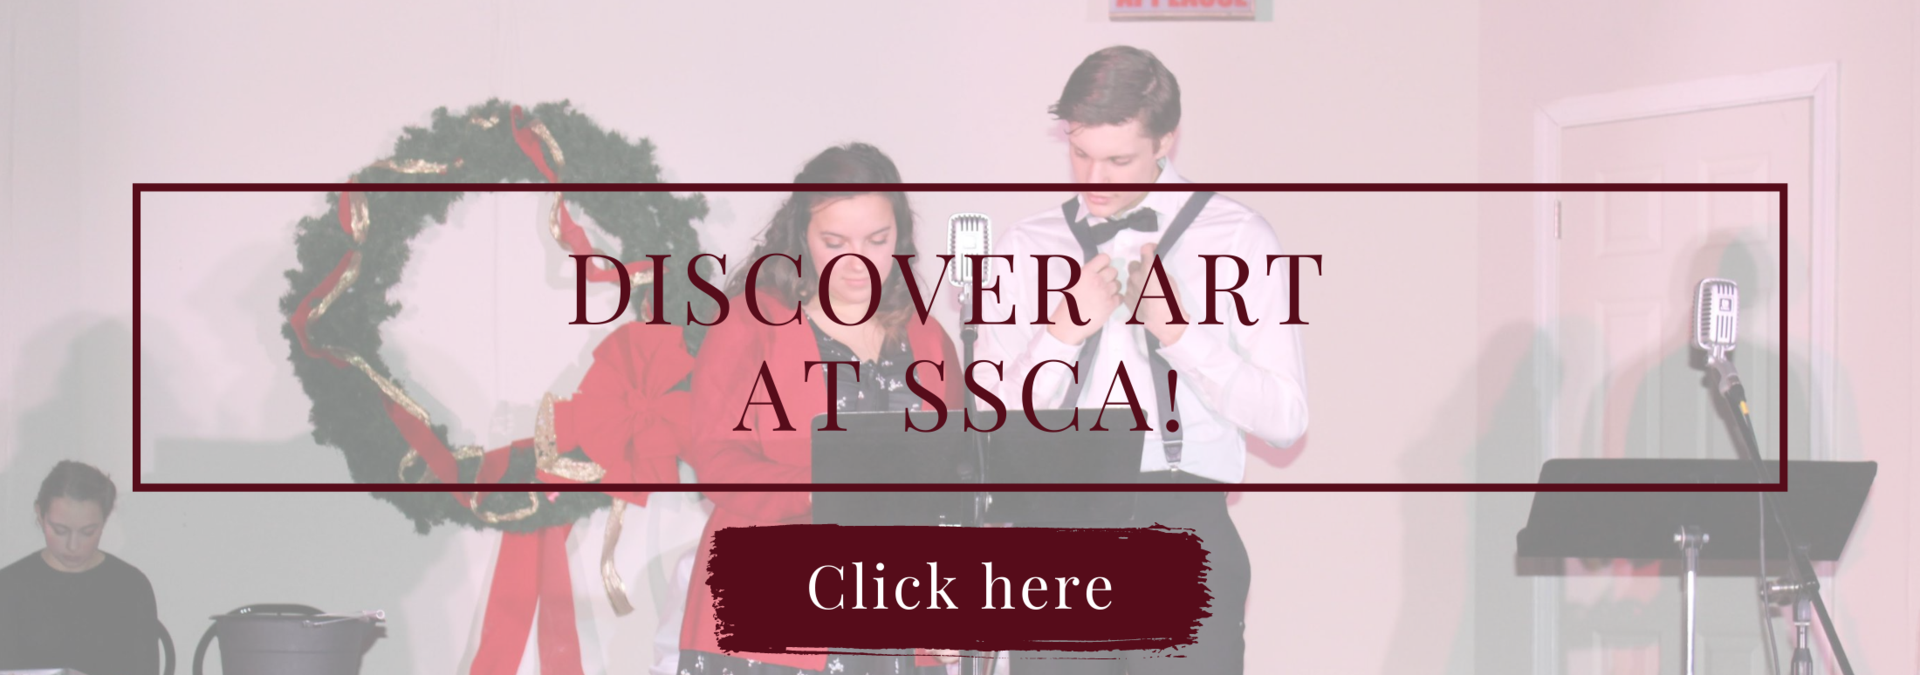 Discover art at SSCA!